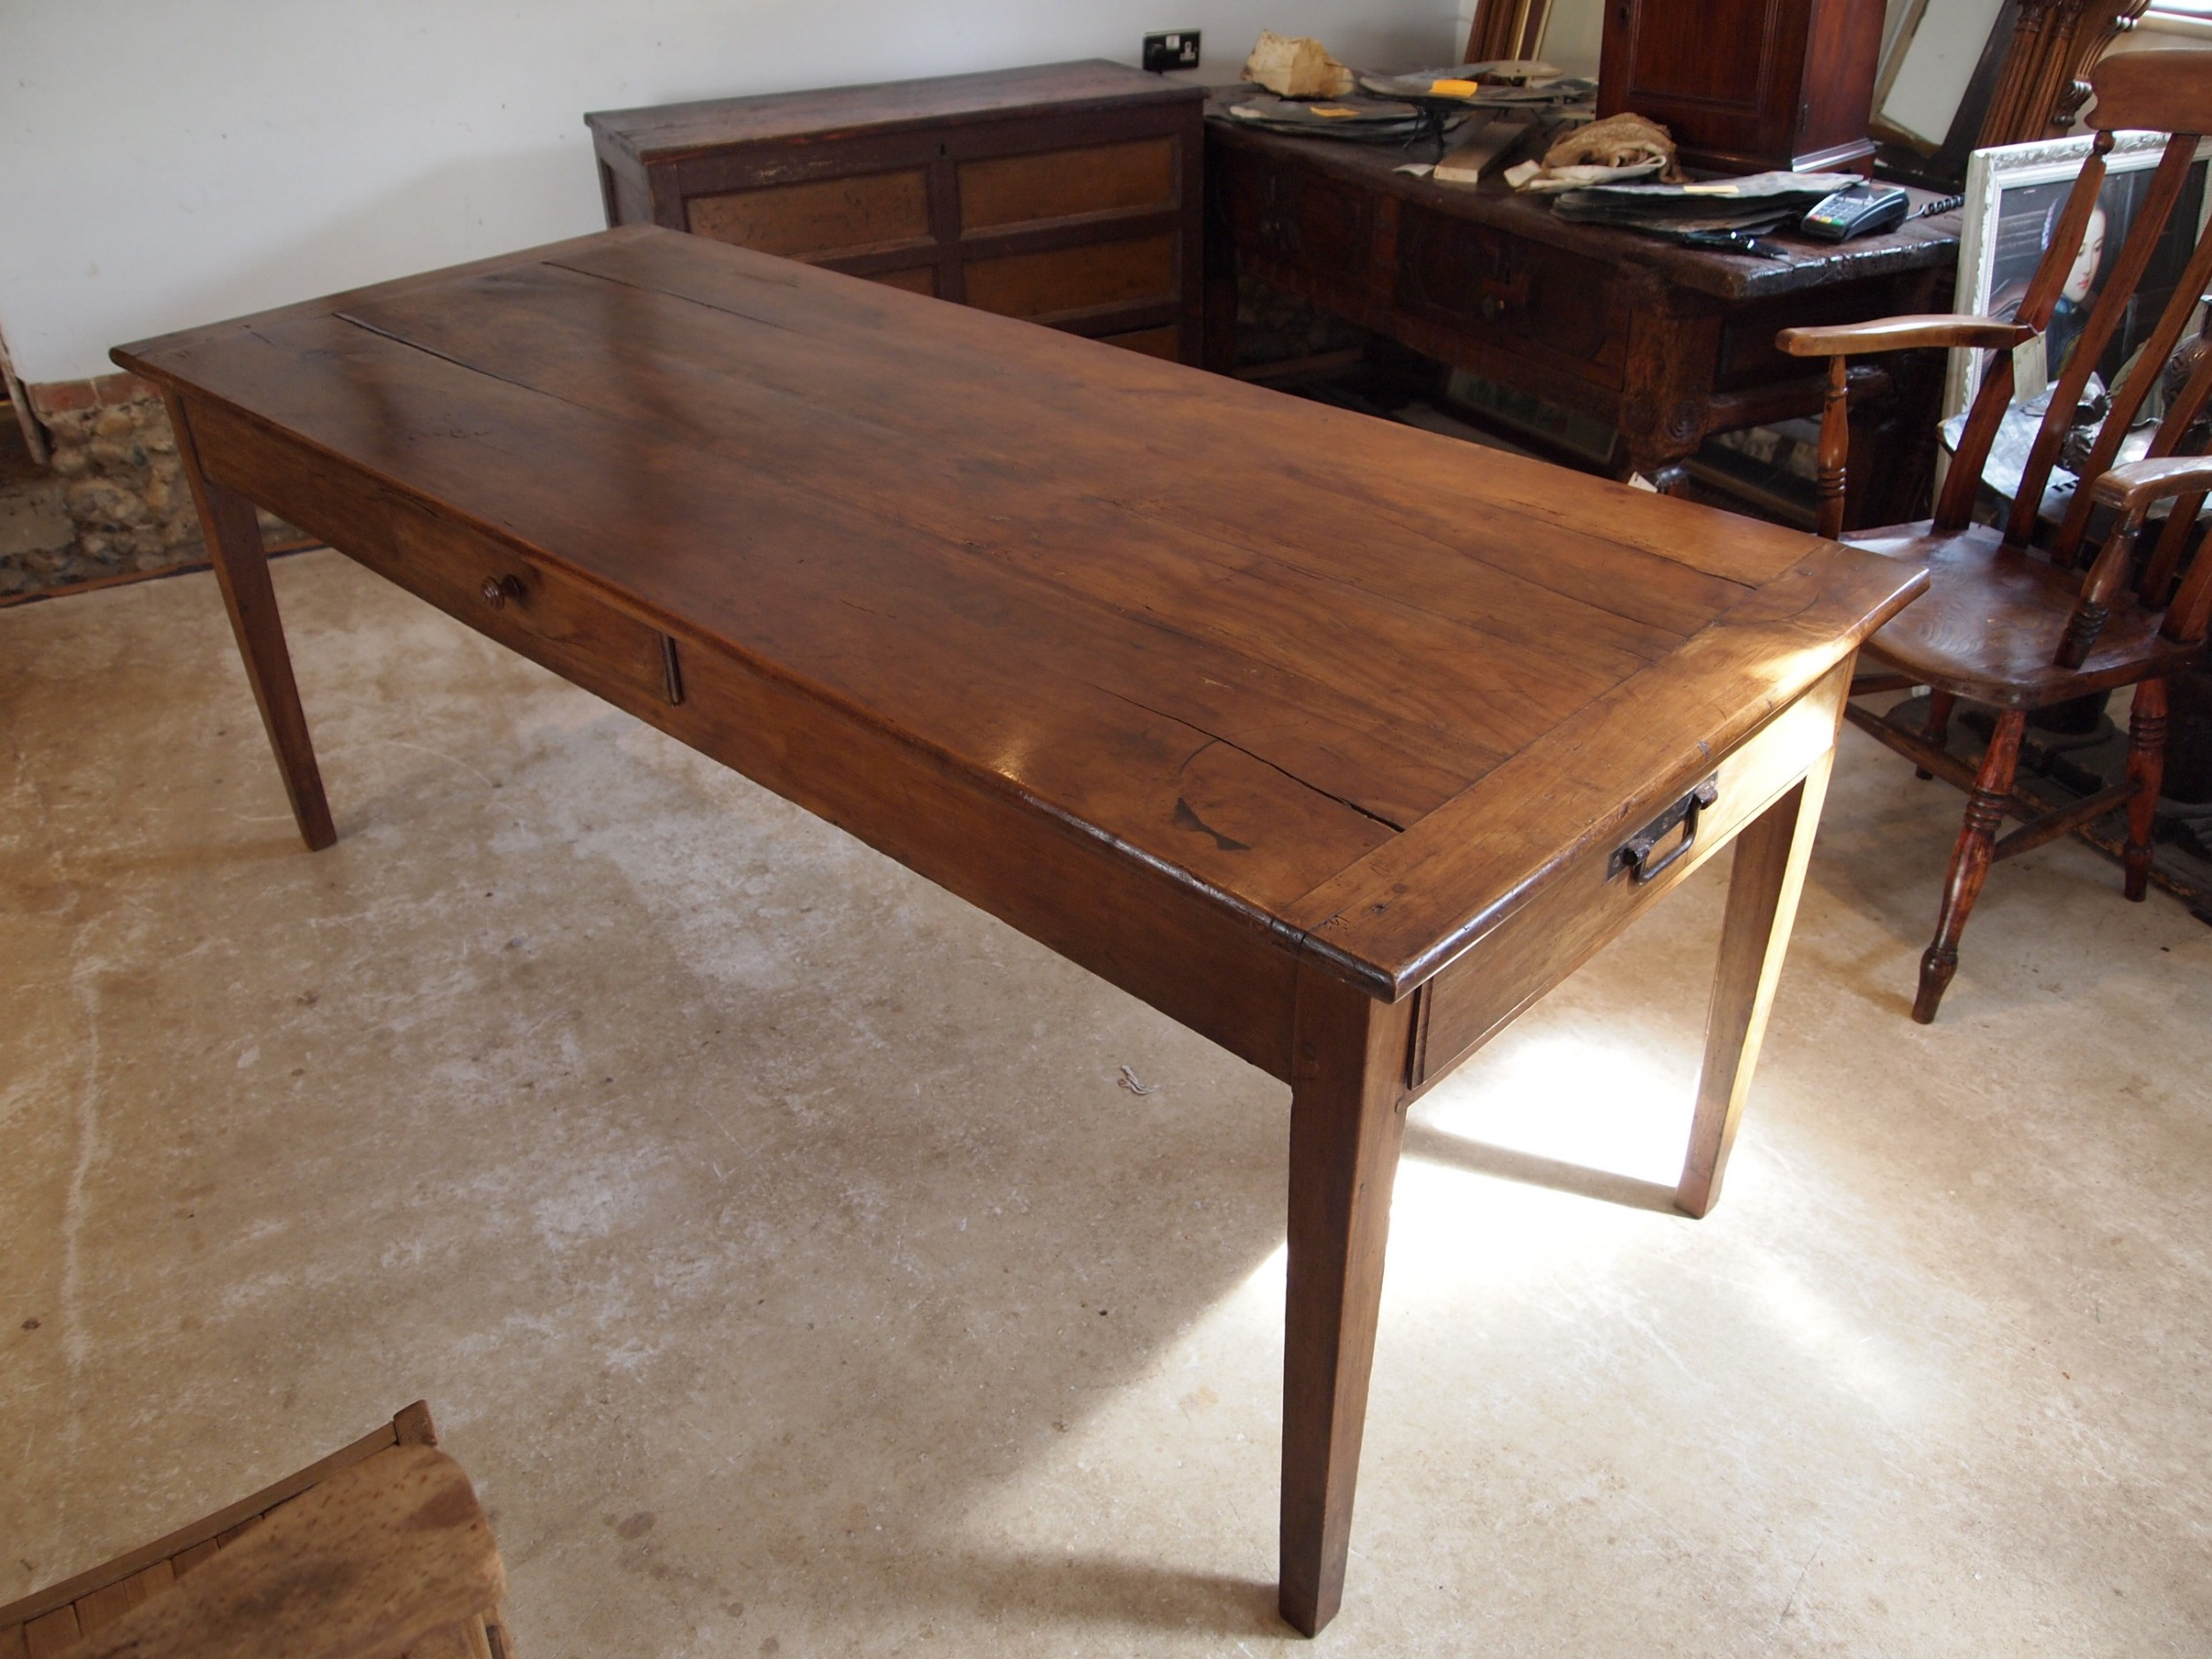 table french cherry wood refectory farmhouse dining c1860